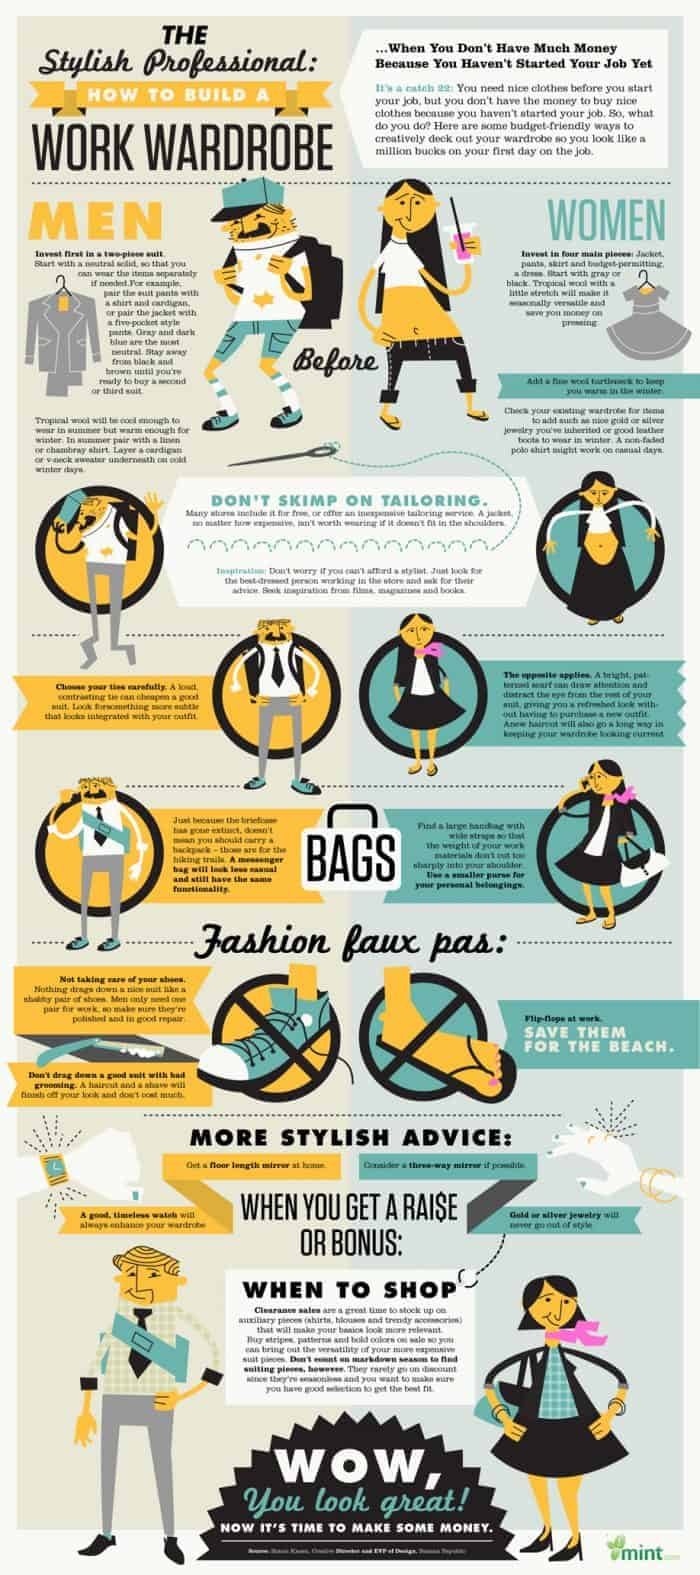 Work Wardrobe Infographic